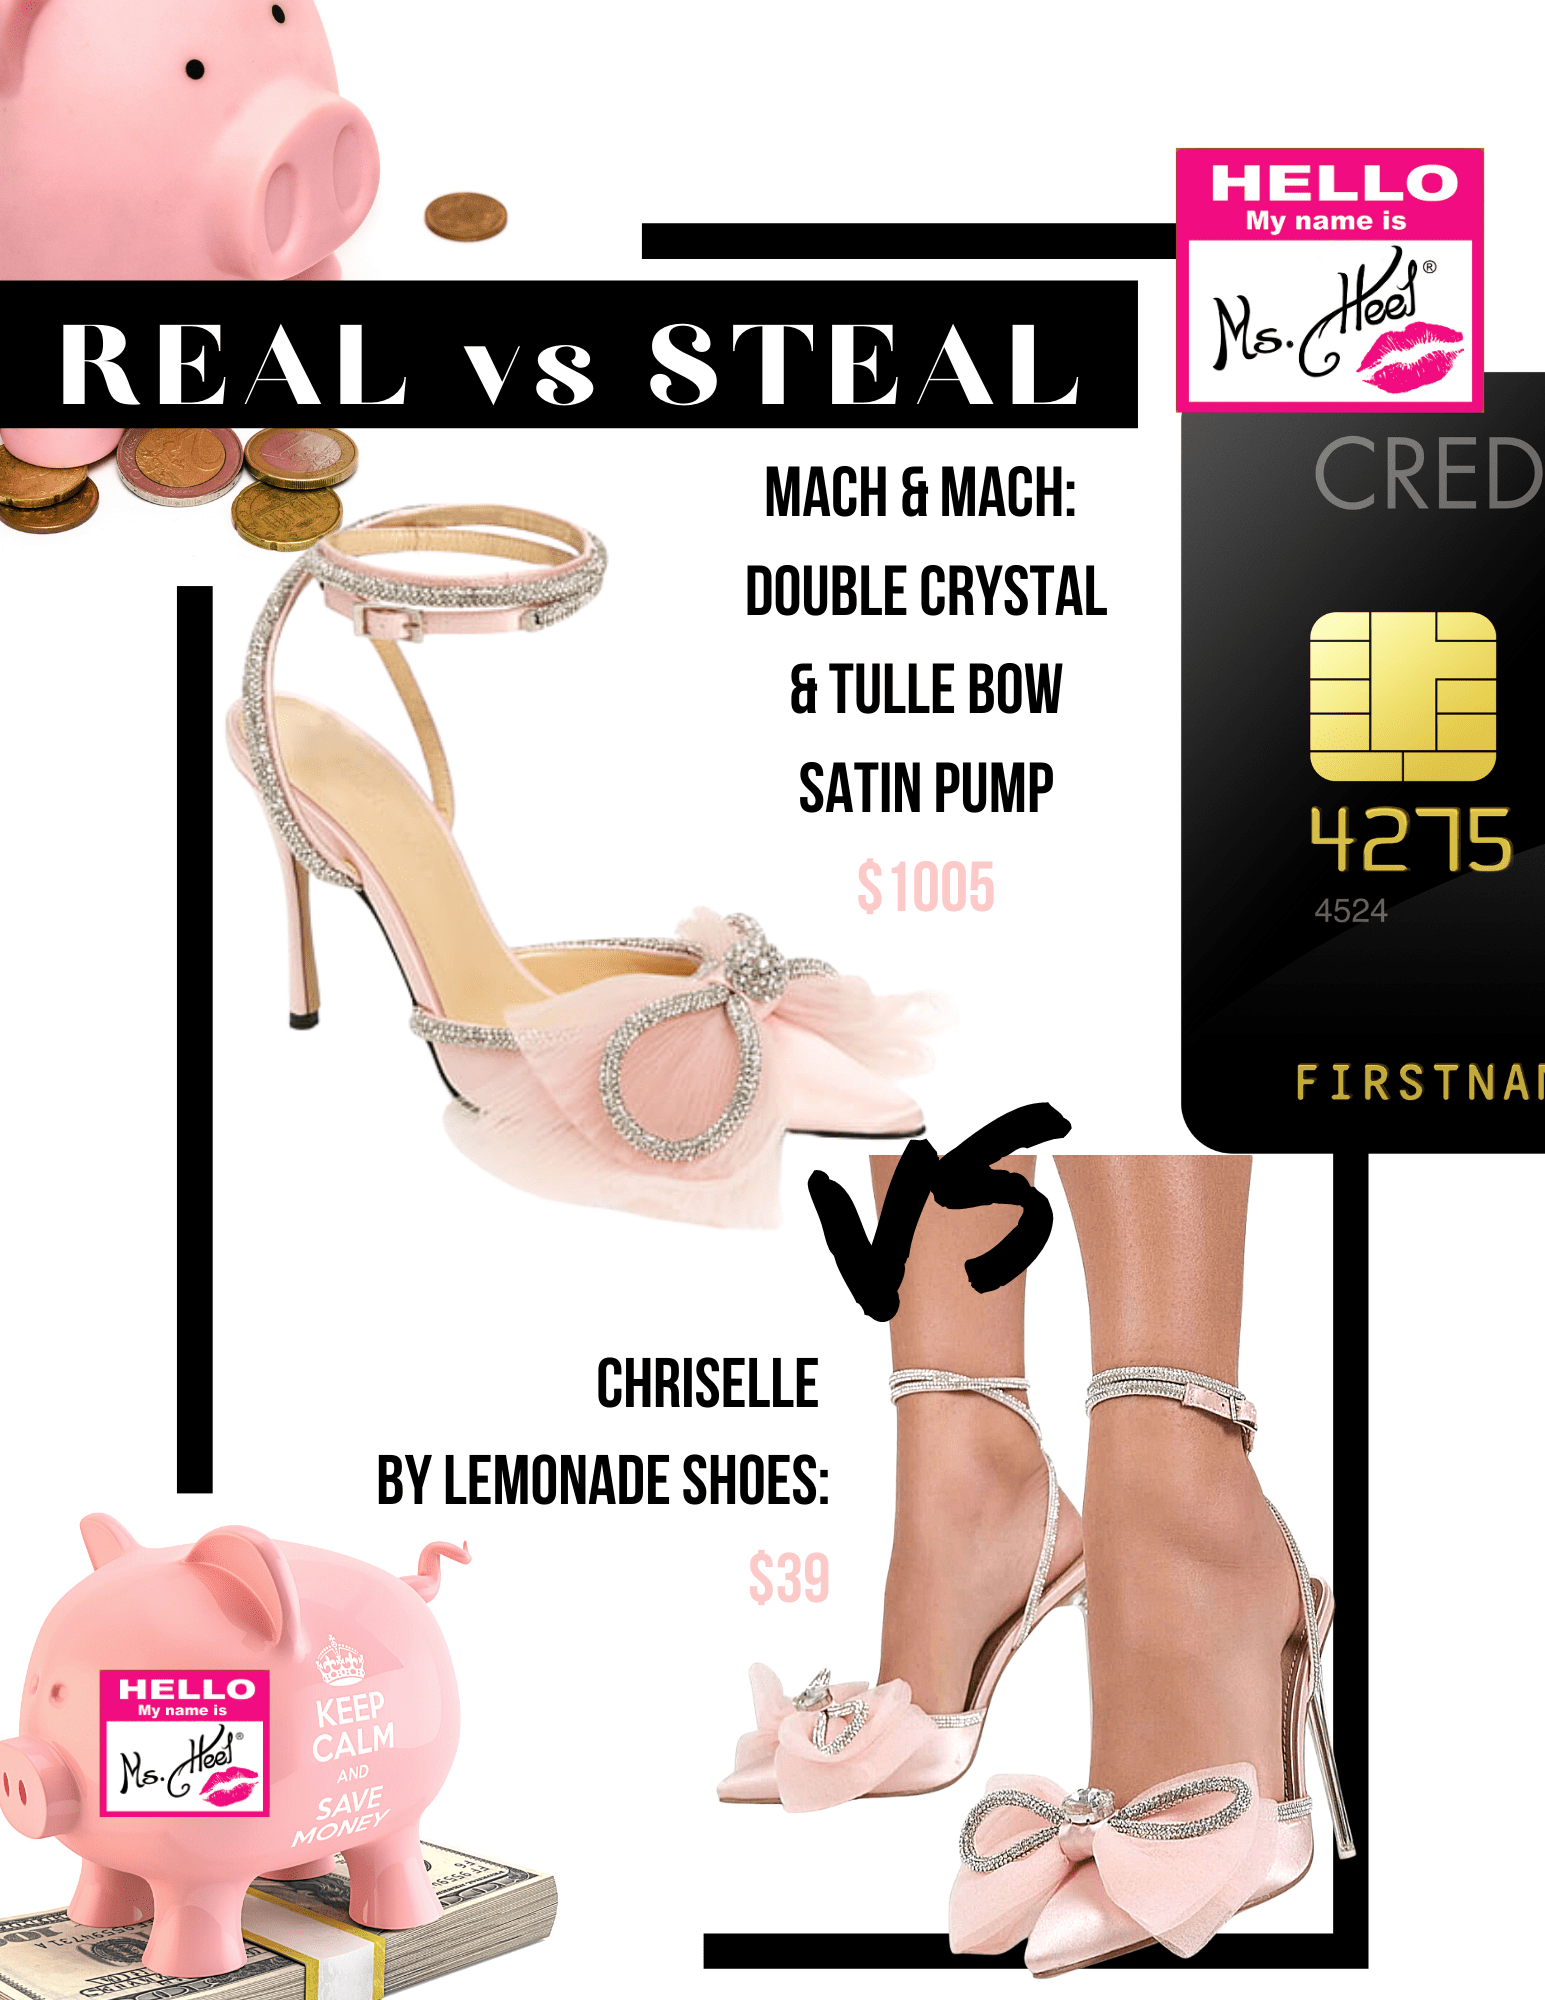 Real vs Steal: Featuring Mach & Mach pink double crystal bow up against the value buy of Chriselle by Lemonade shoes.